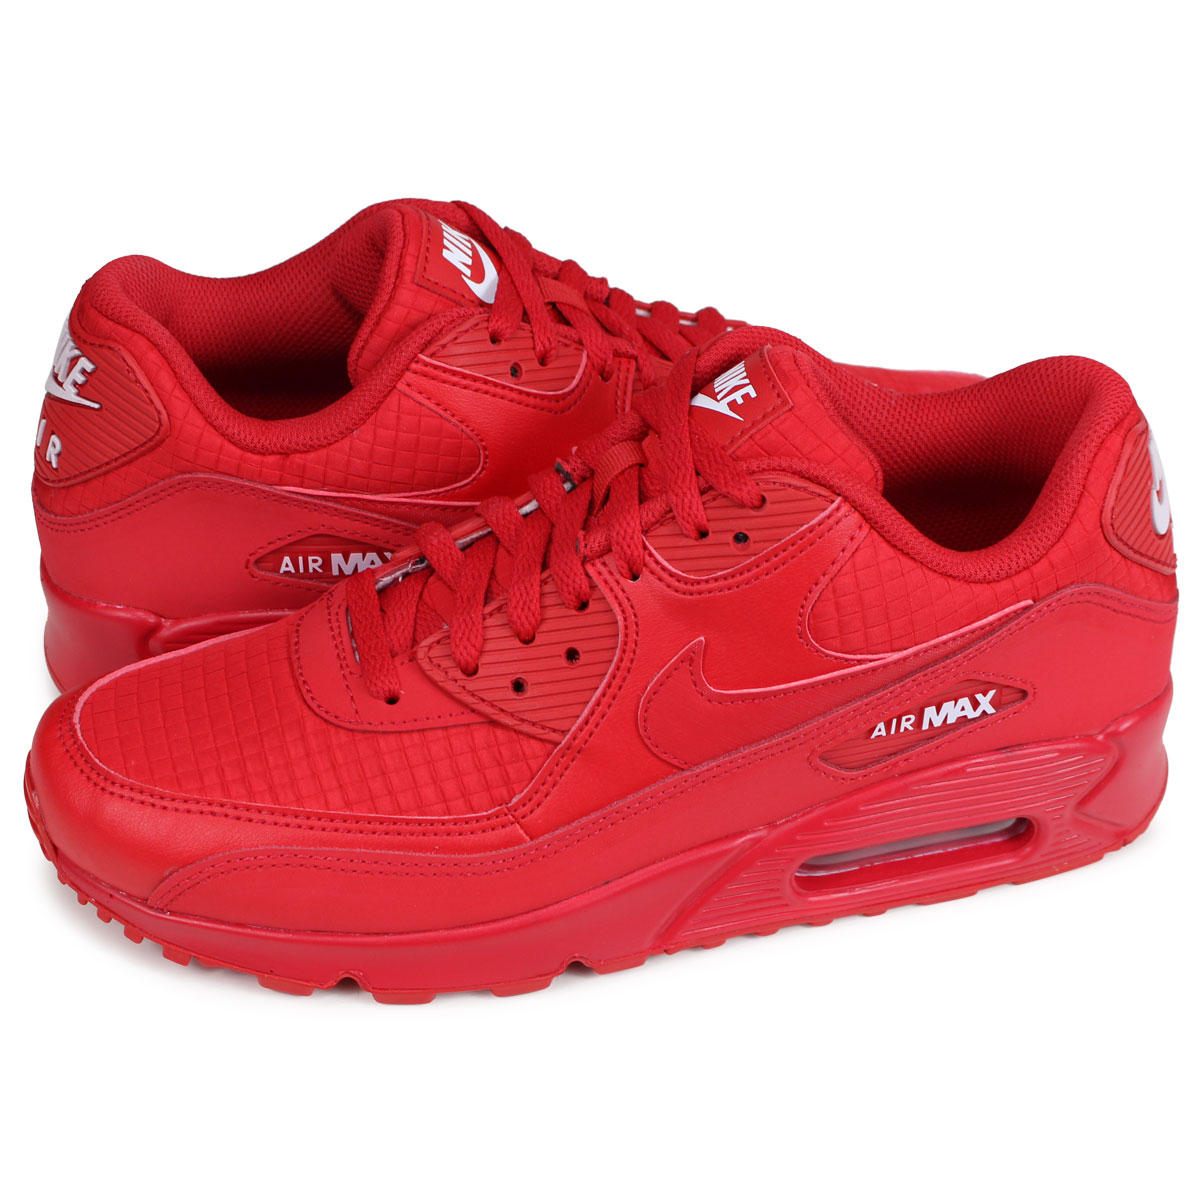 half off db32f 99194 Nike NIKE Air Max 90 essential sneakers men gap Dis AIR MAX 90 ESSENTIAL red  AJ1285 ...